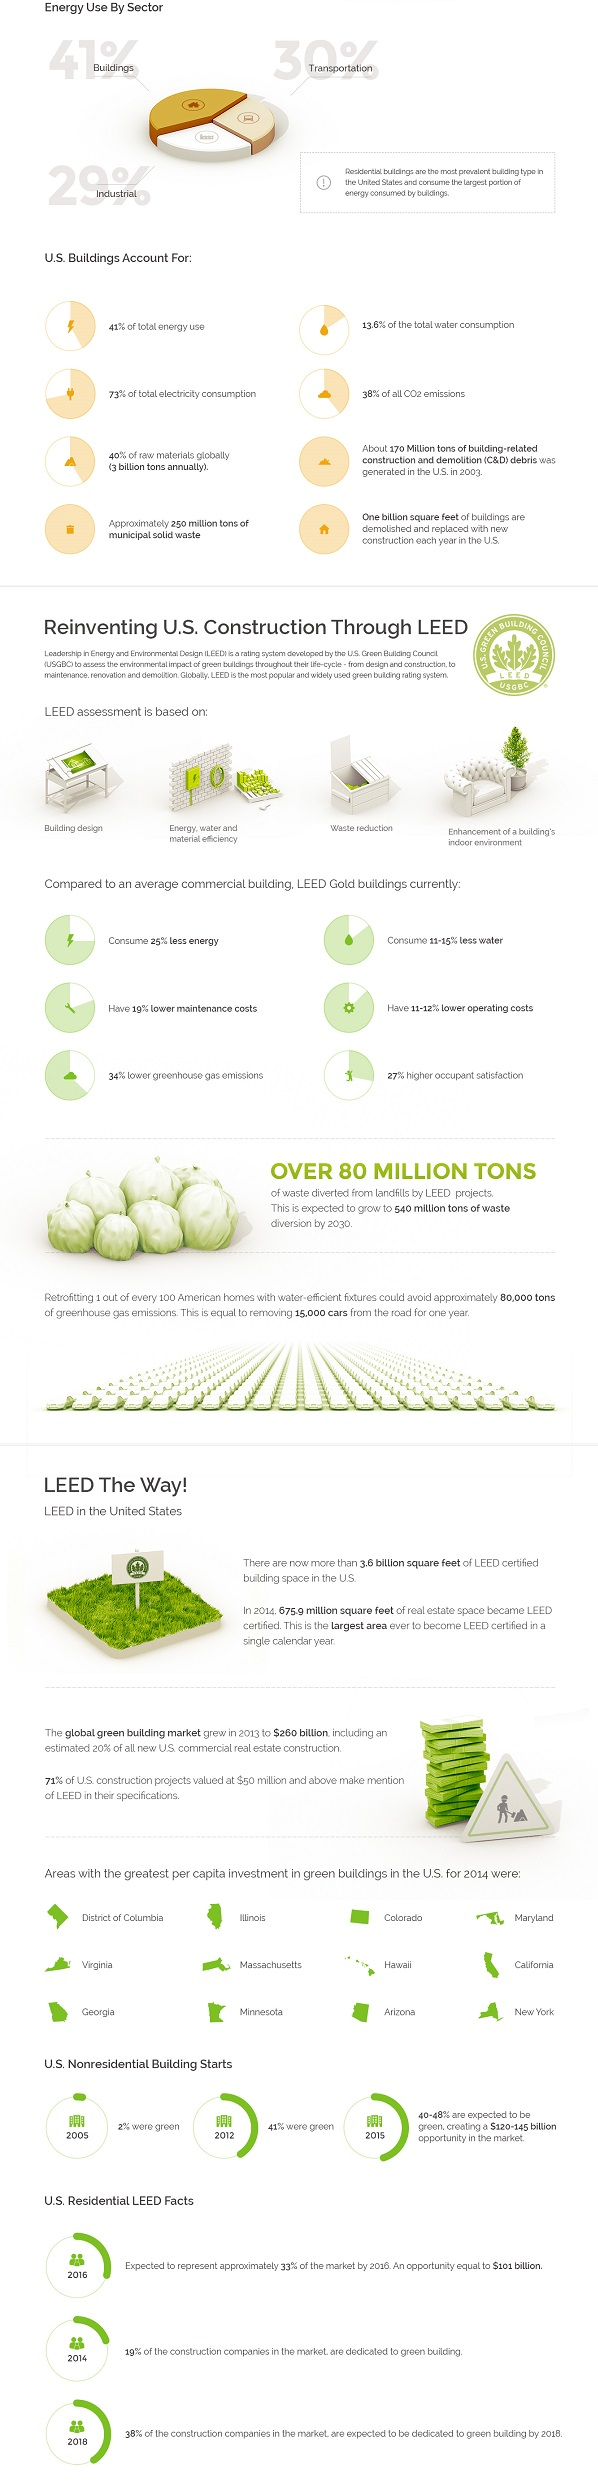 leed construction infographic2jpg